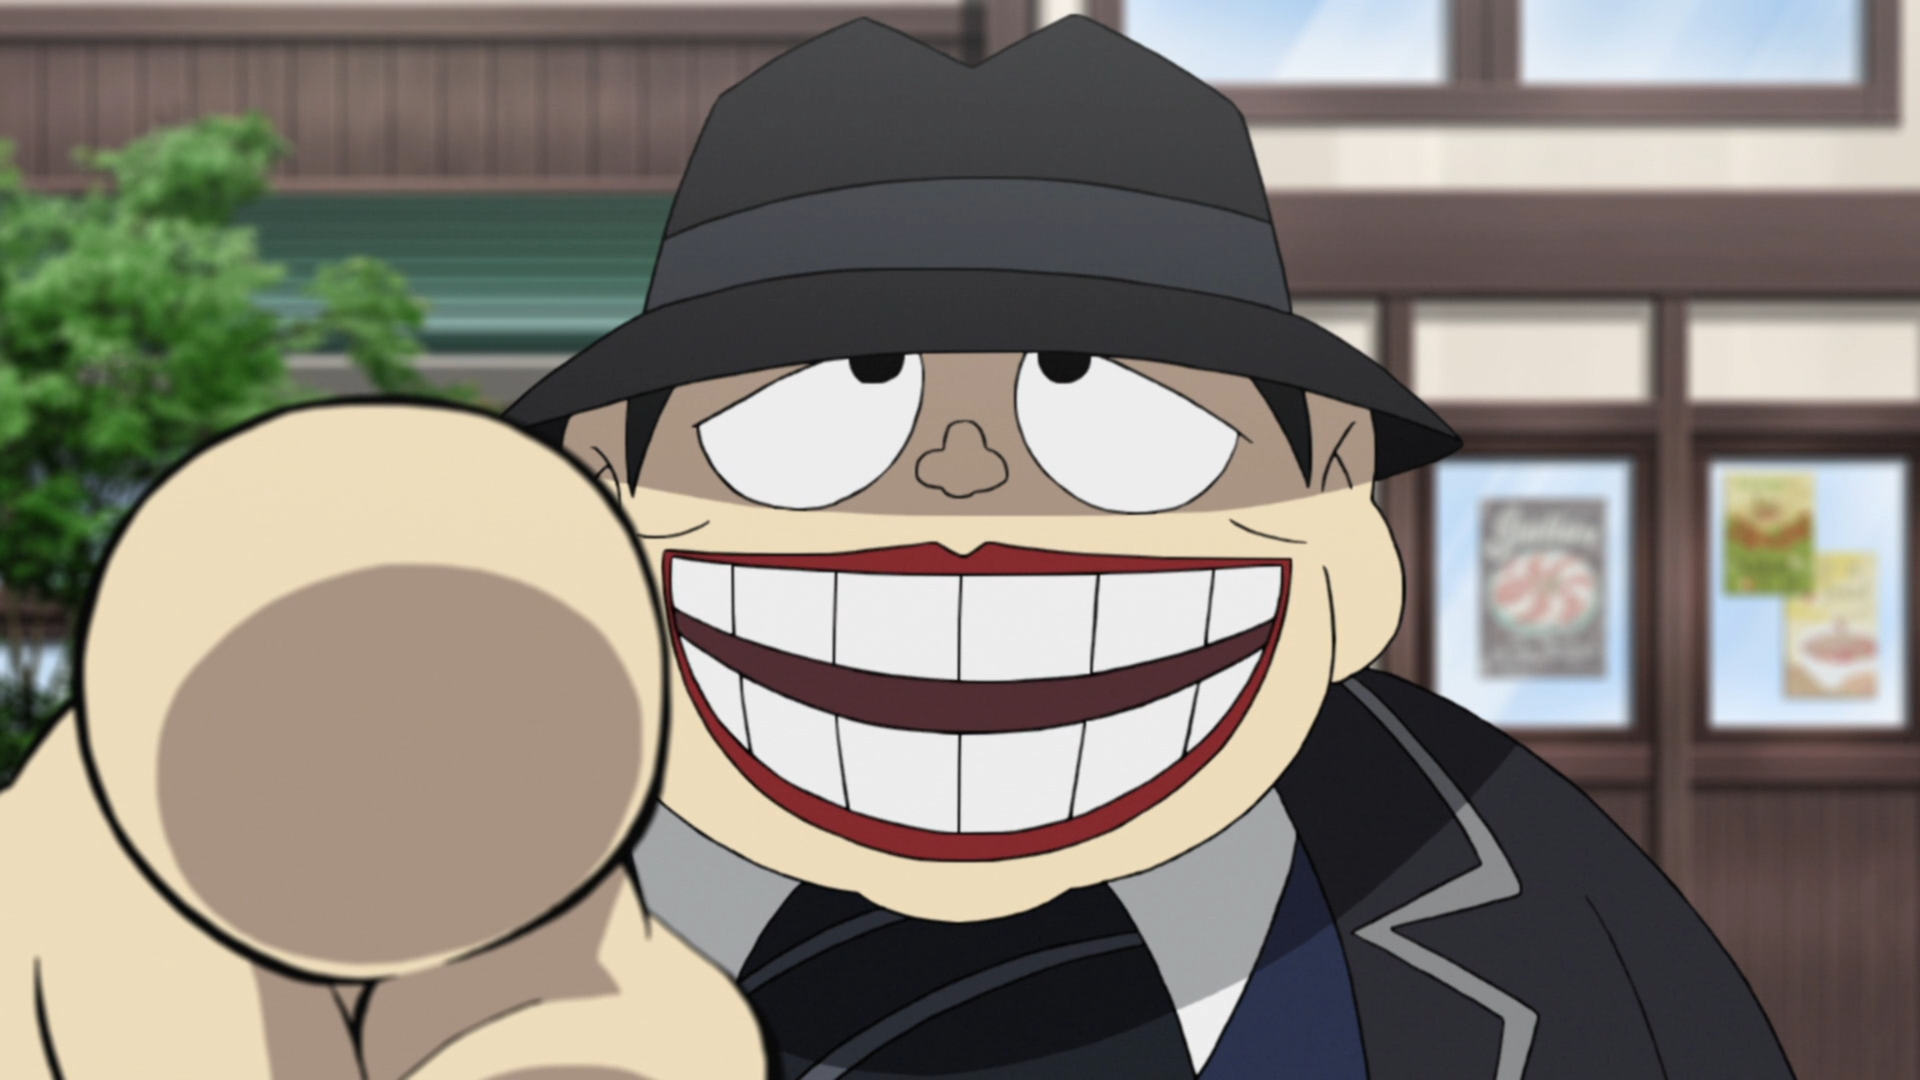 Moguro Fukuzo points an accusatory finger and grins in a scene from the 2017 The Laughing Salesman TV anime.